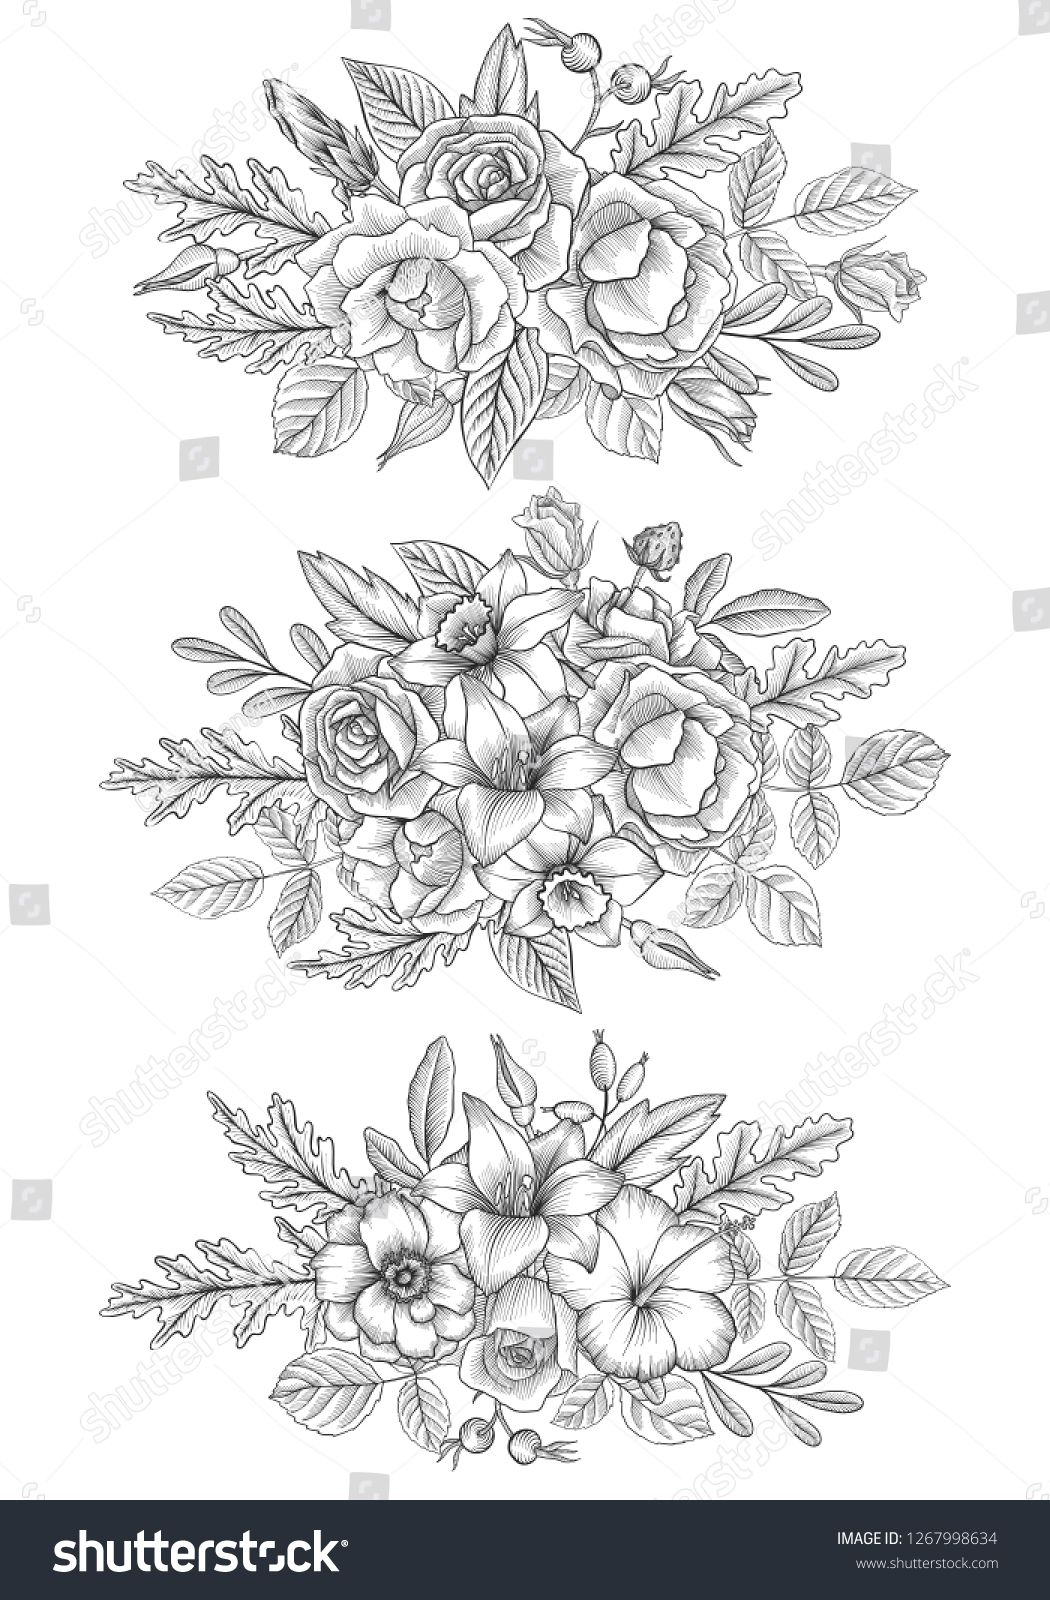 Vintage Vector Floral Composition With Flowers Buds And Leaves Of Roses Imitation Of Engraving Hand Drawn Design El Vintage Hand Drawn Design Design Element